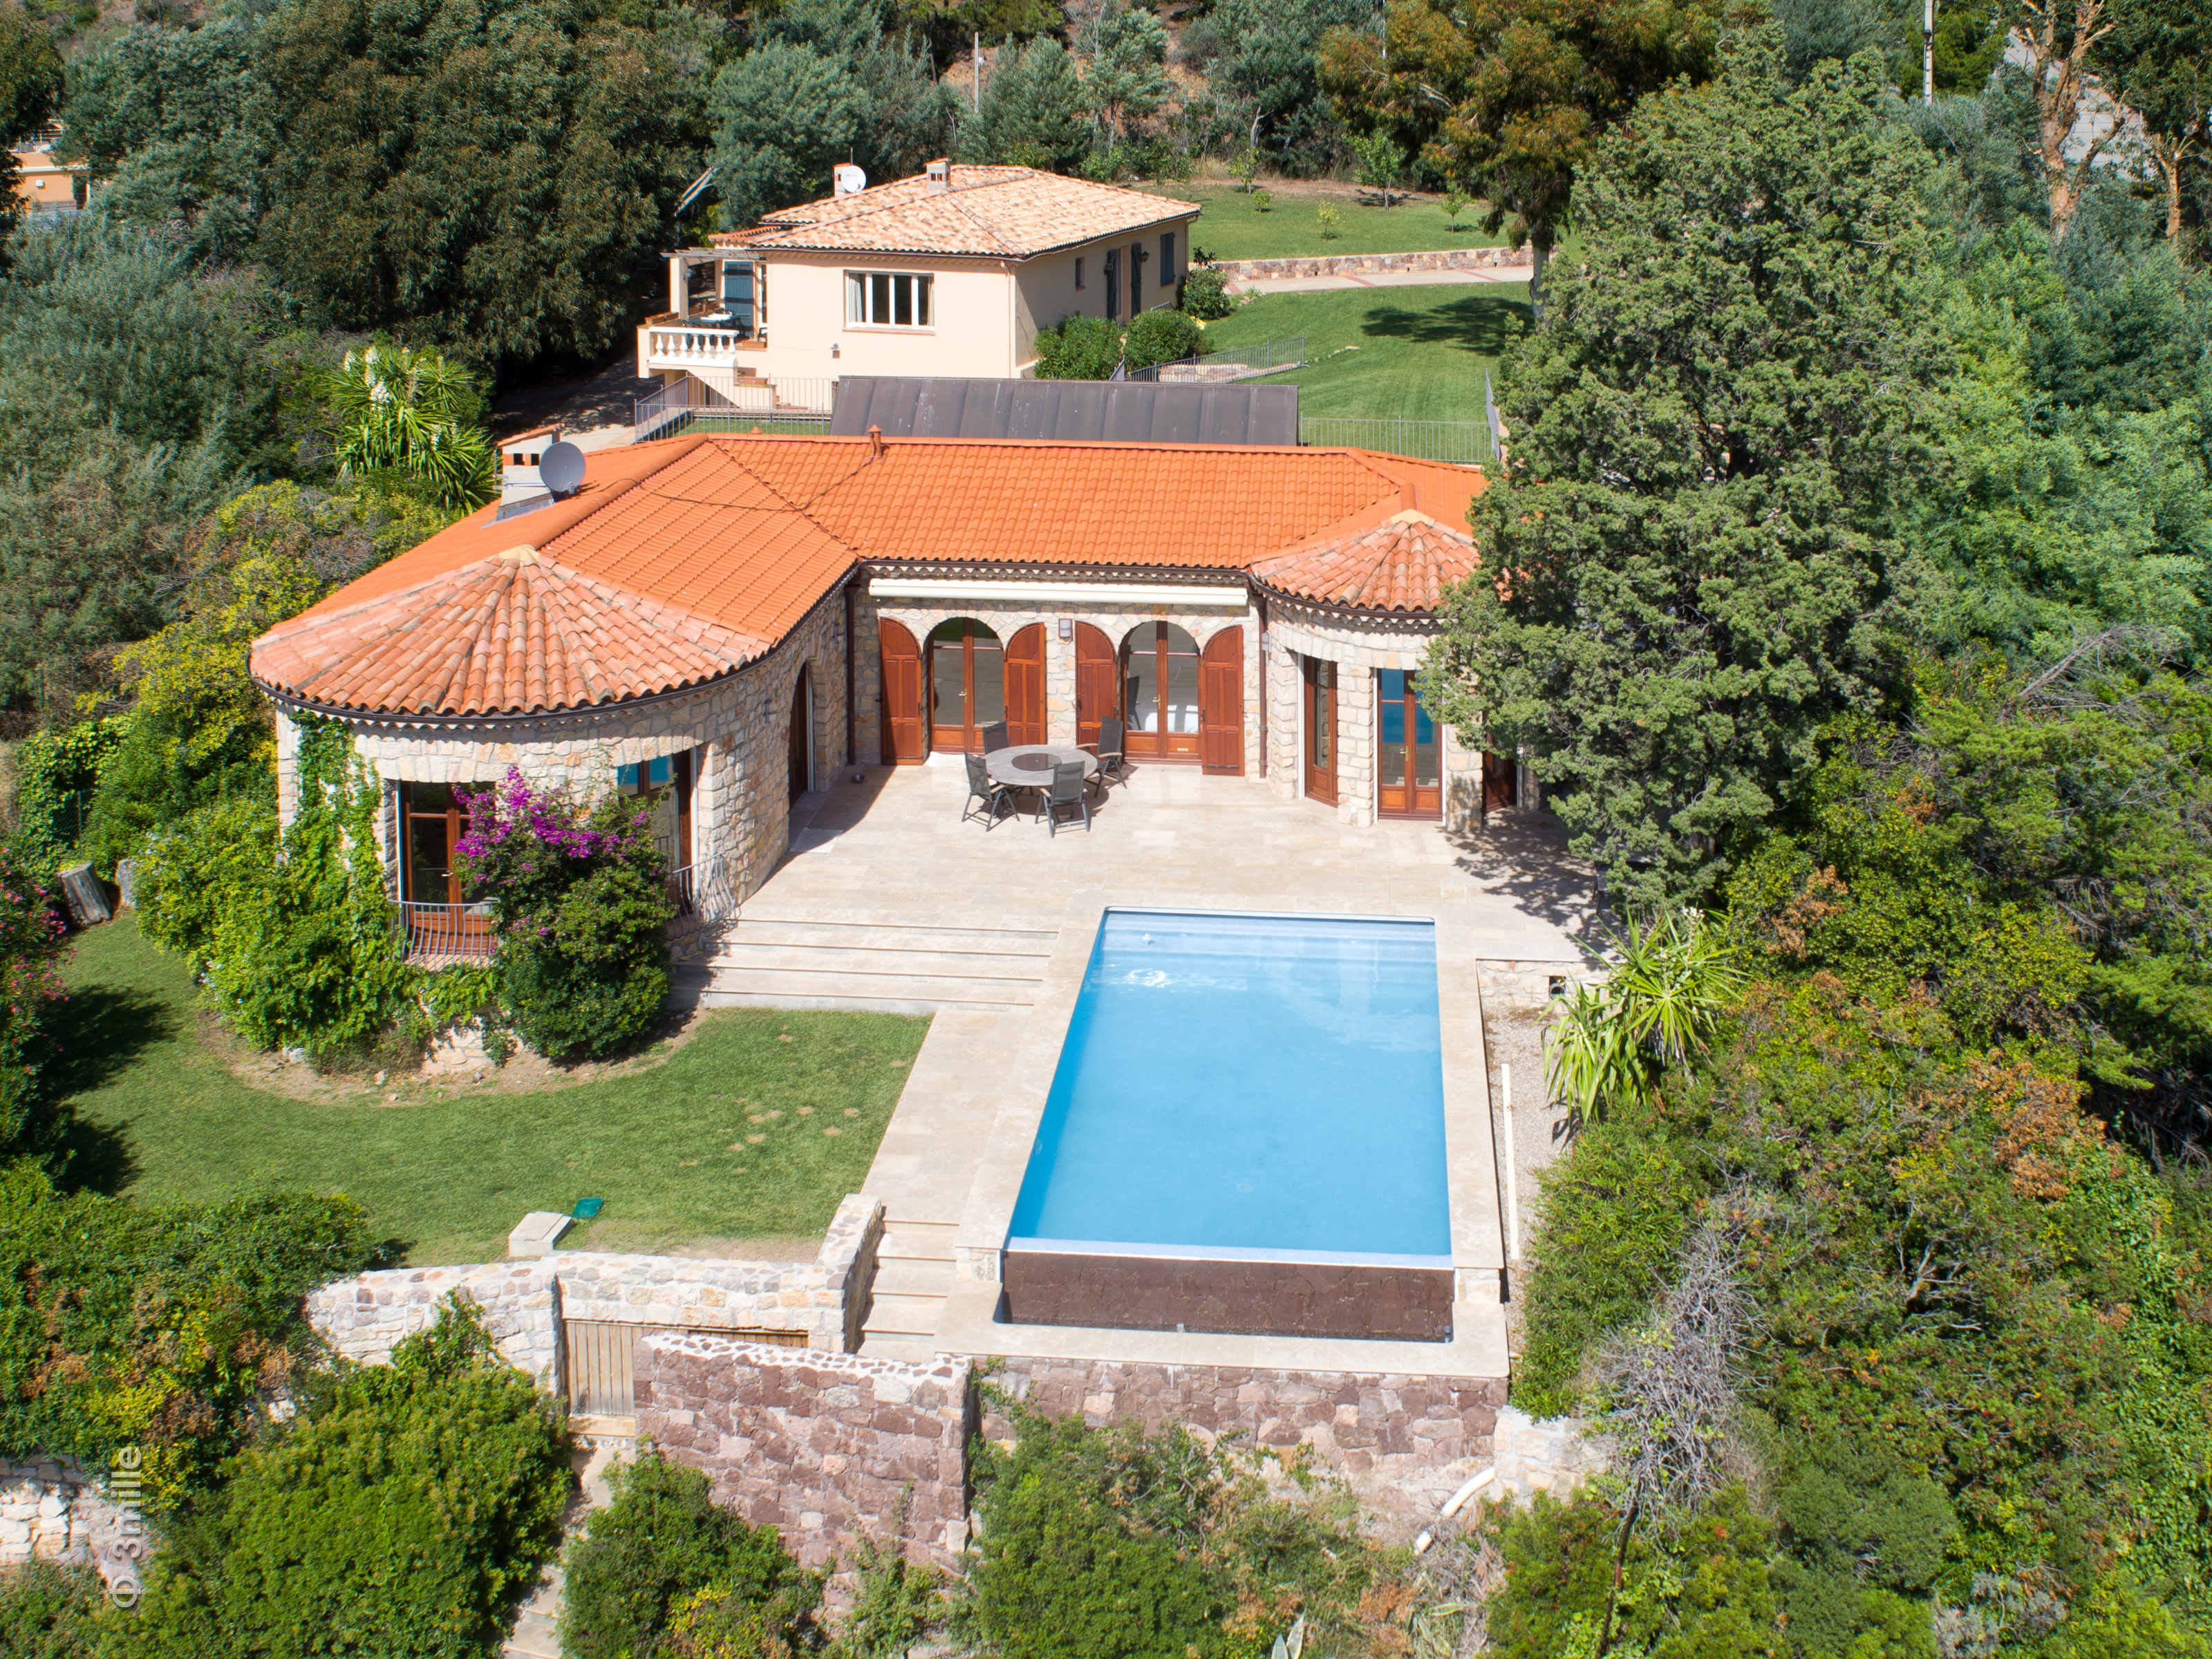 Single Family Home for Sale at SOLE AGENT - WATERFRONT - NEAR CANNES Theoule Sur Mer, Provence-Alpes-Cote D'Azur 06590 France